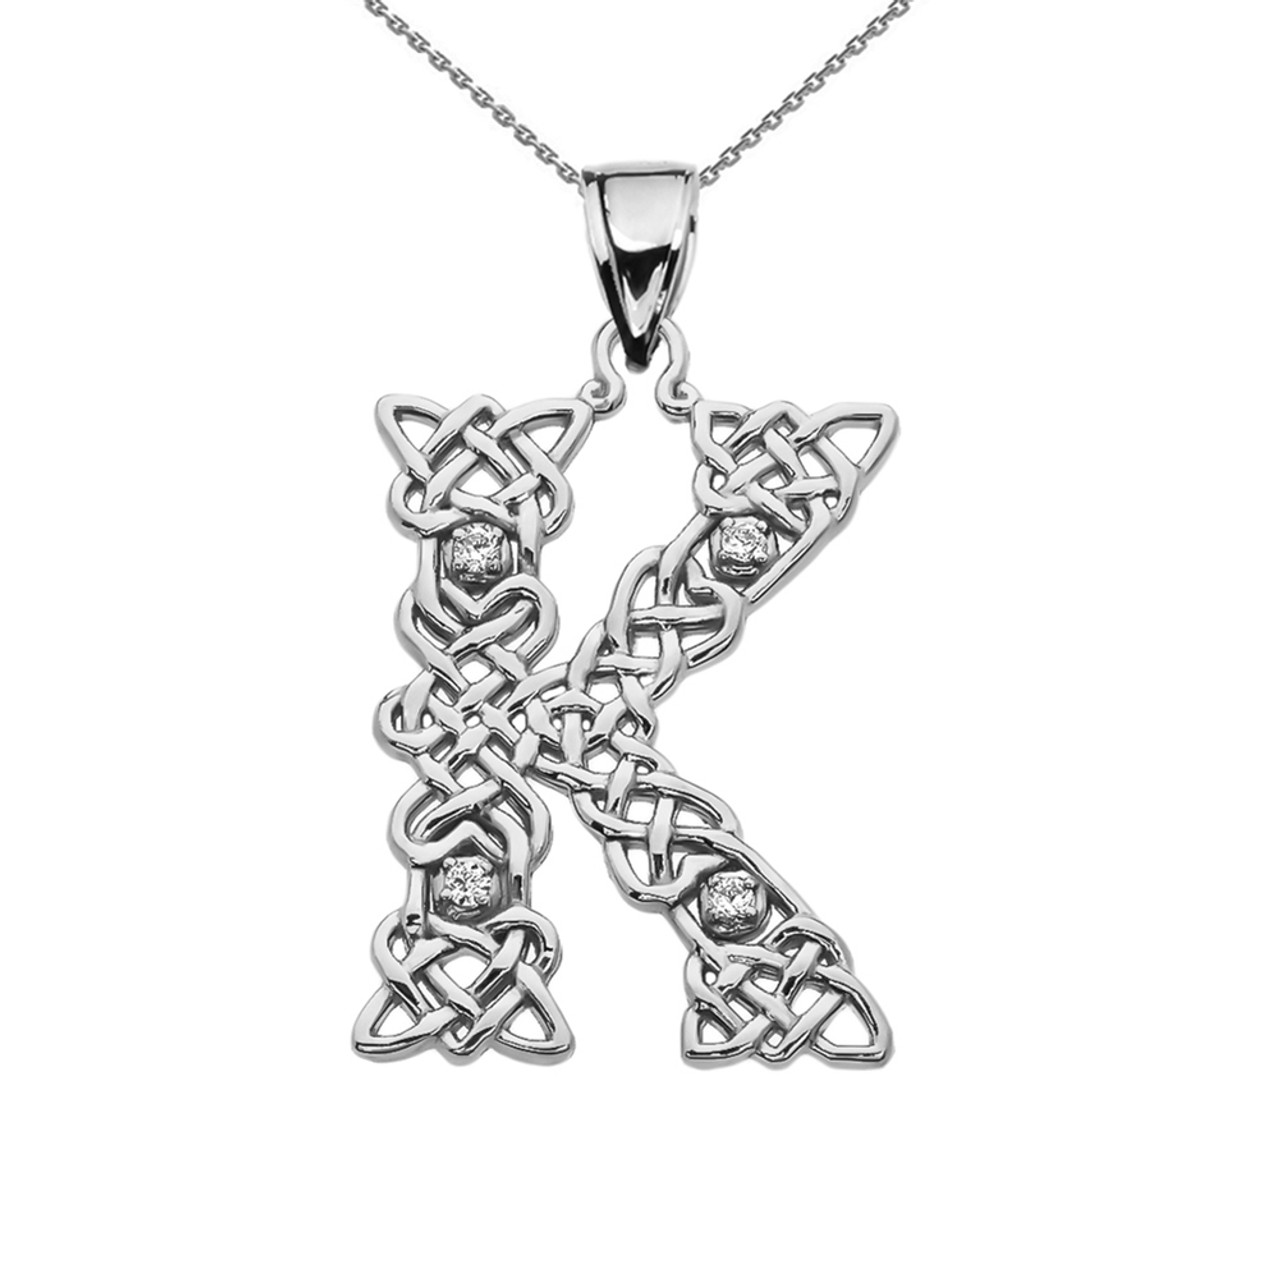 Cz k initial in celtic pattern sterling silver pendant necklace k initial in celtic knot pattern sterling silver pendant necklace with cz mozeypictures Image collections